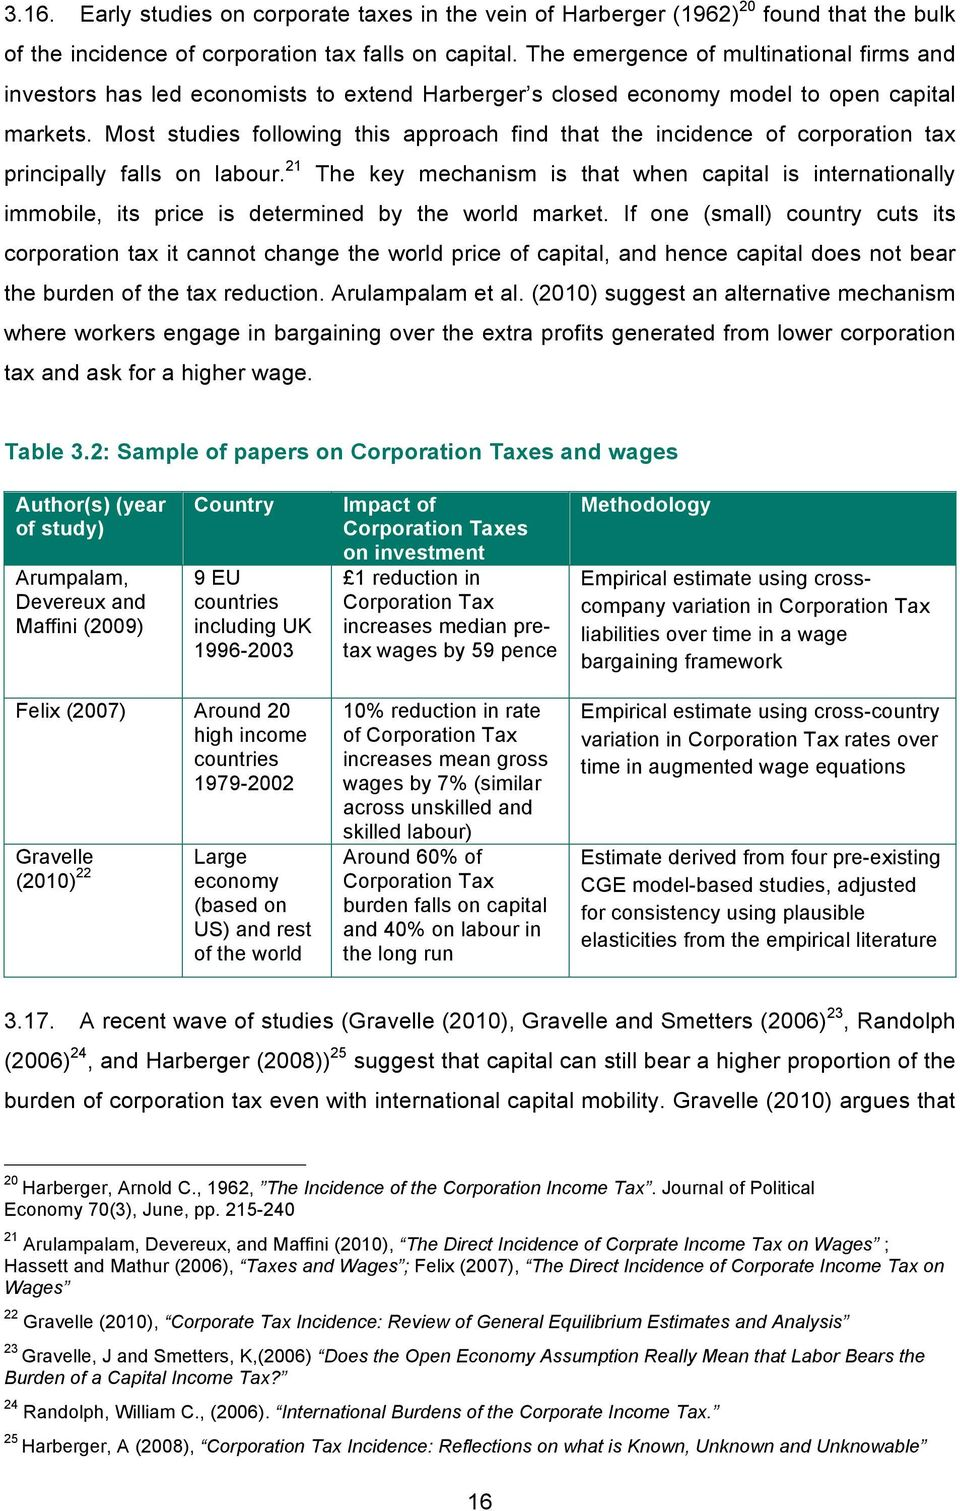 Most studies following this approach find that the incidence of corporation tax principally falls on labour.